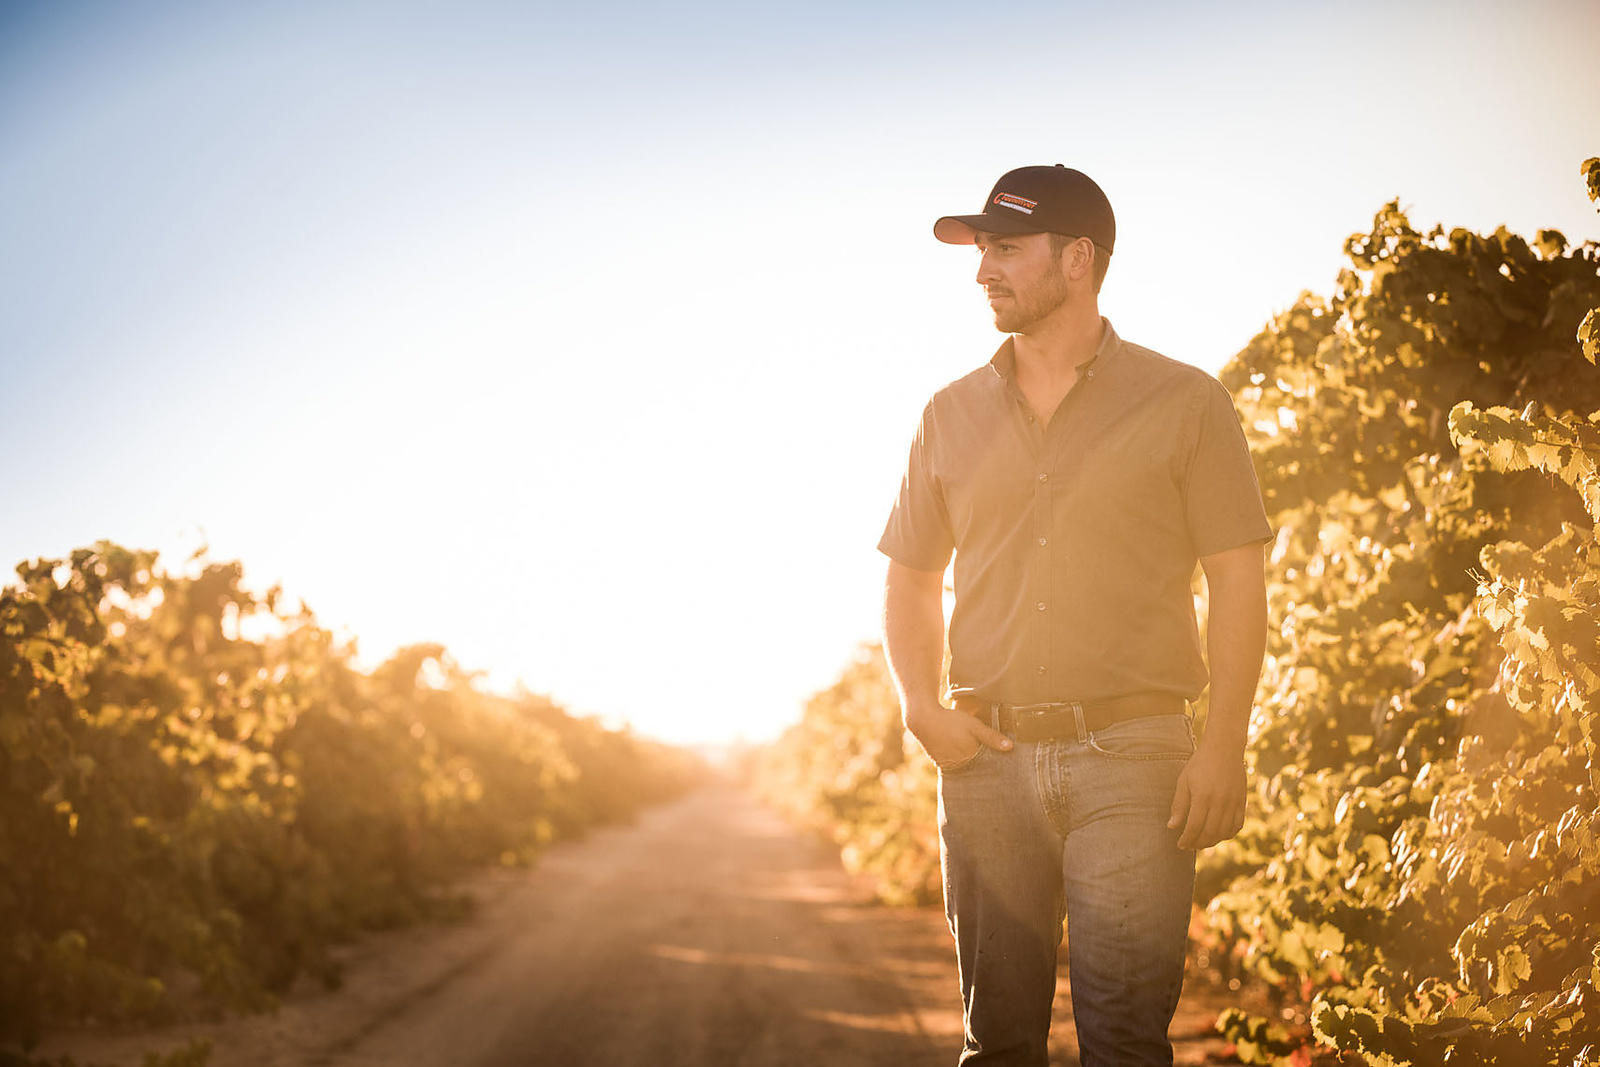 Corporate, agricultural and industrial lifestyle photoshoot for Lodi winery by Jason Tinacci